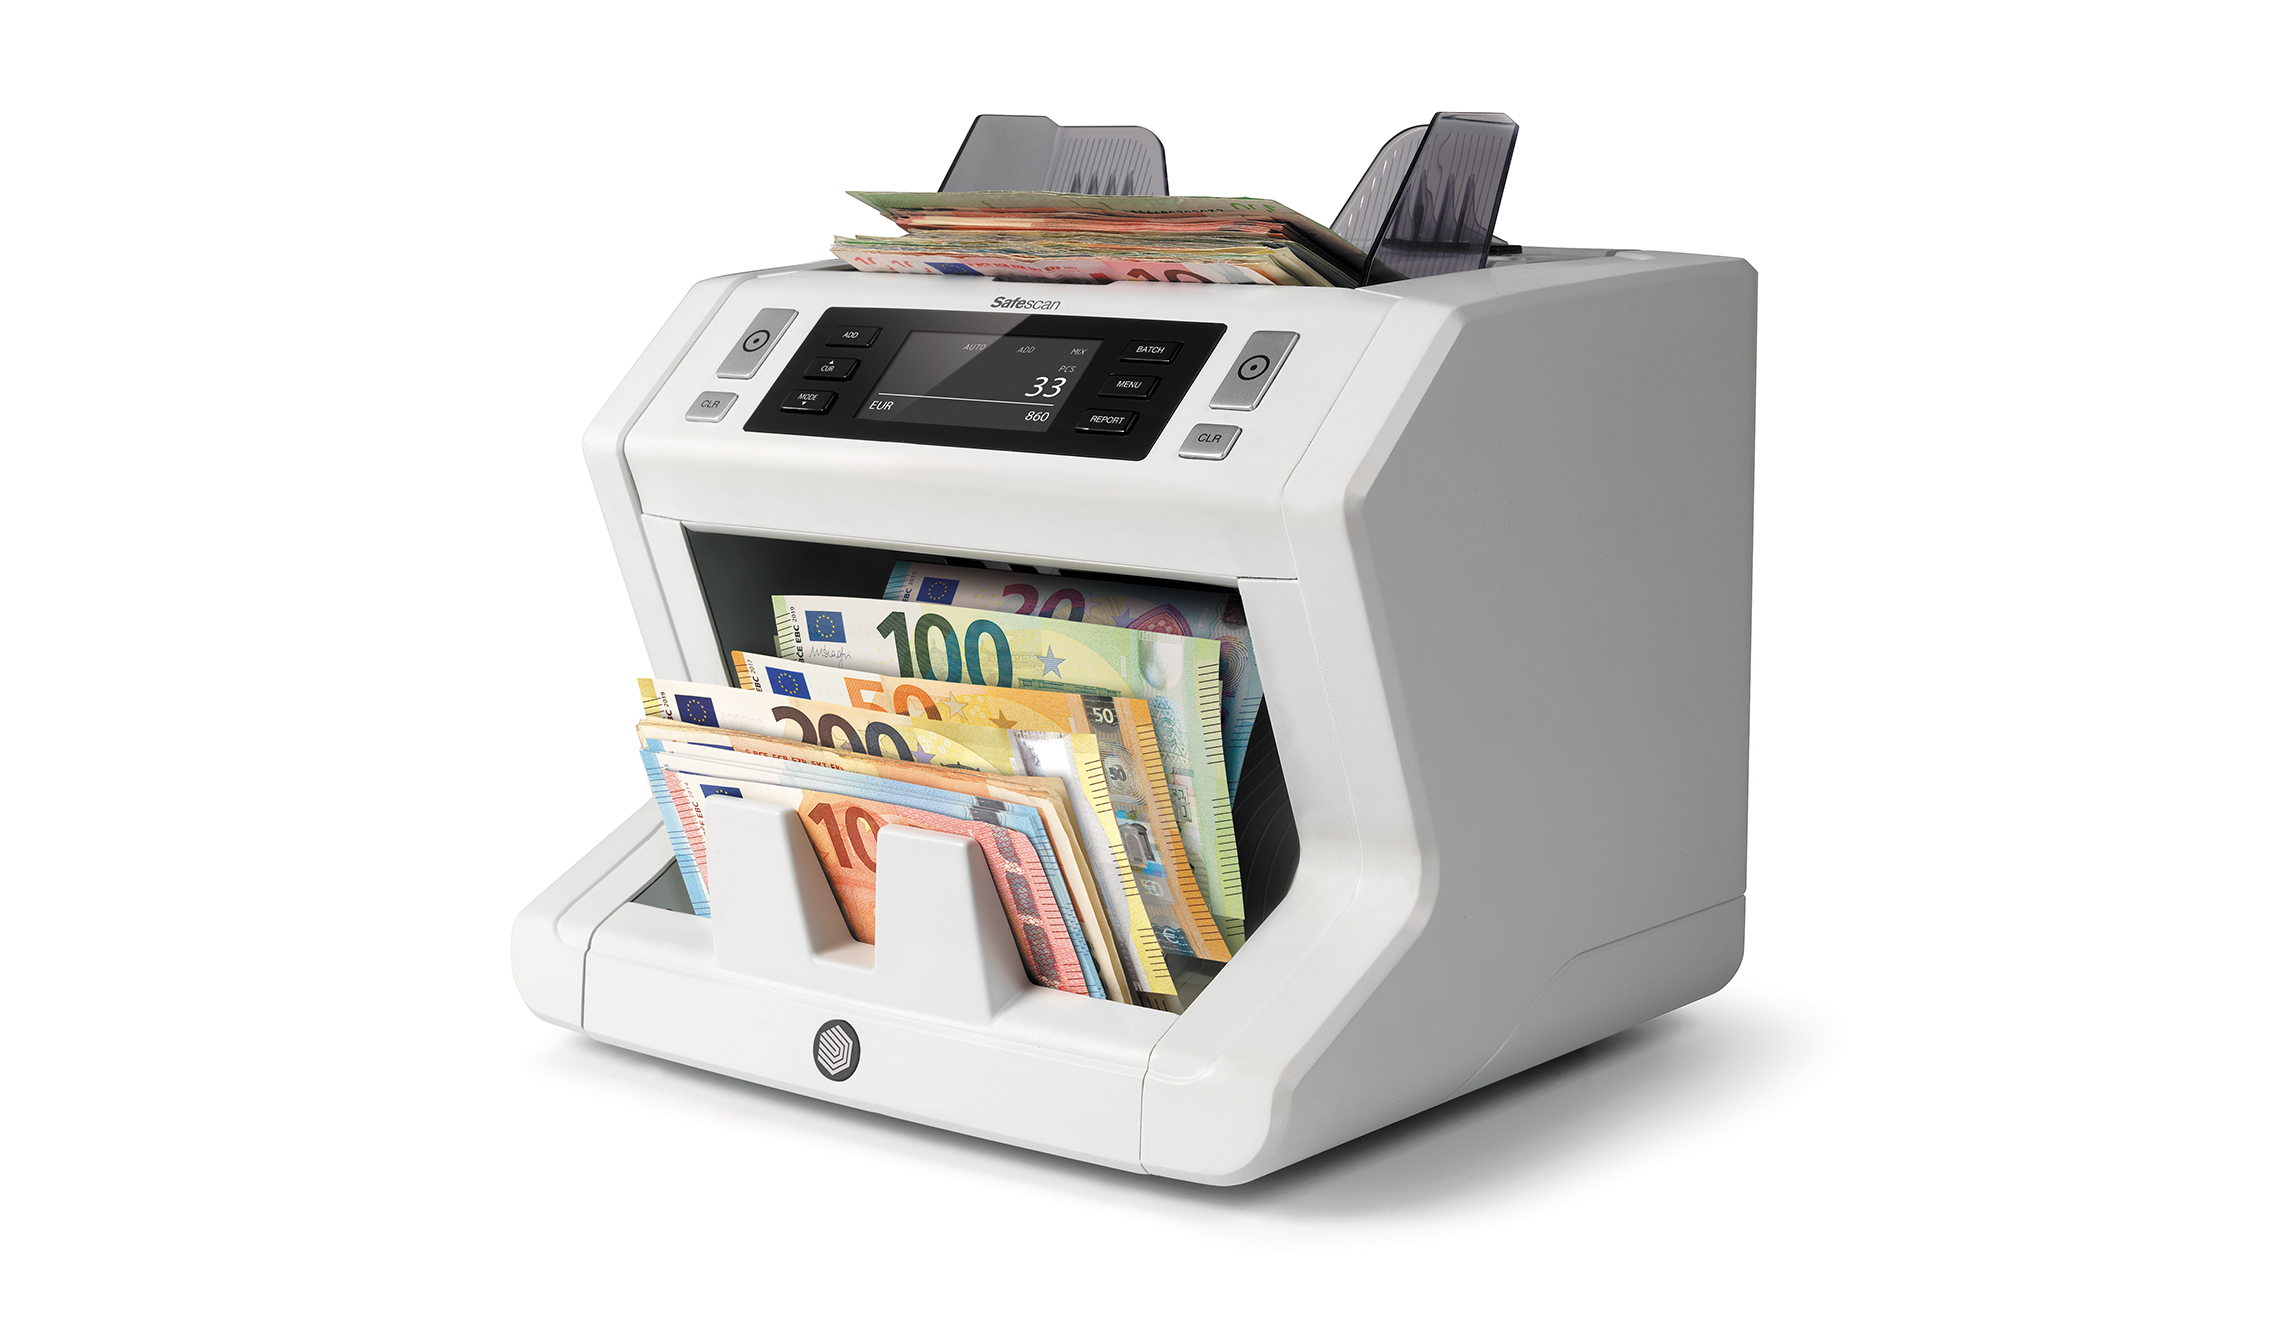 Cash Safescan 2685-S Banknote Counter